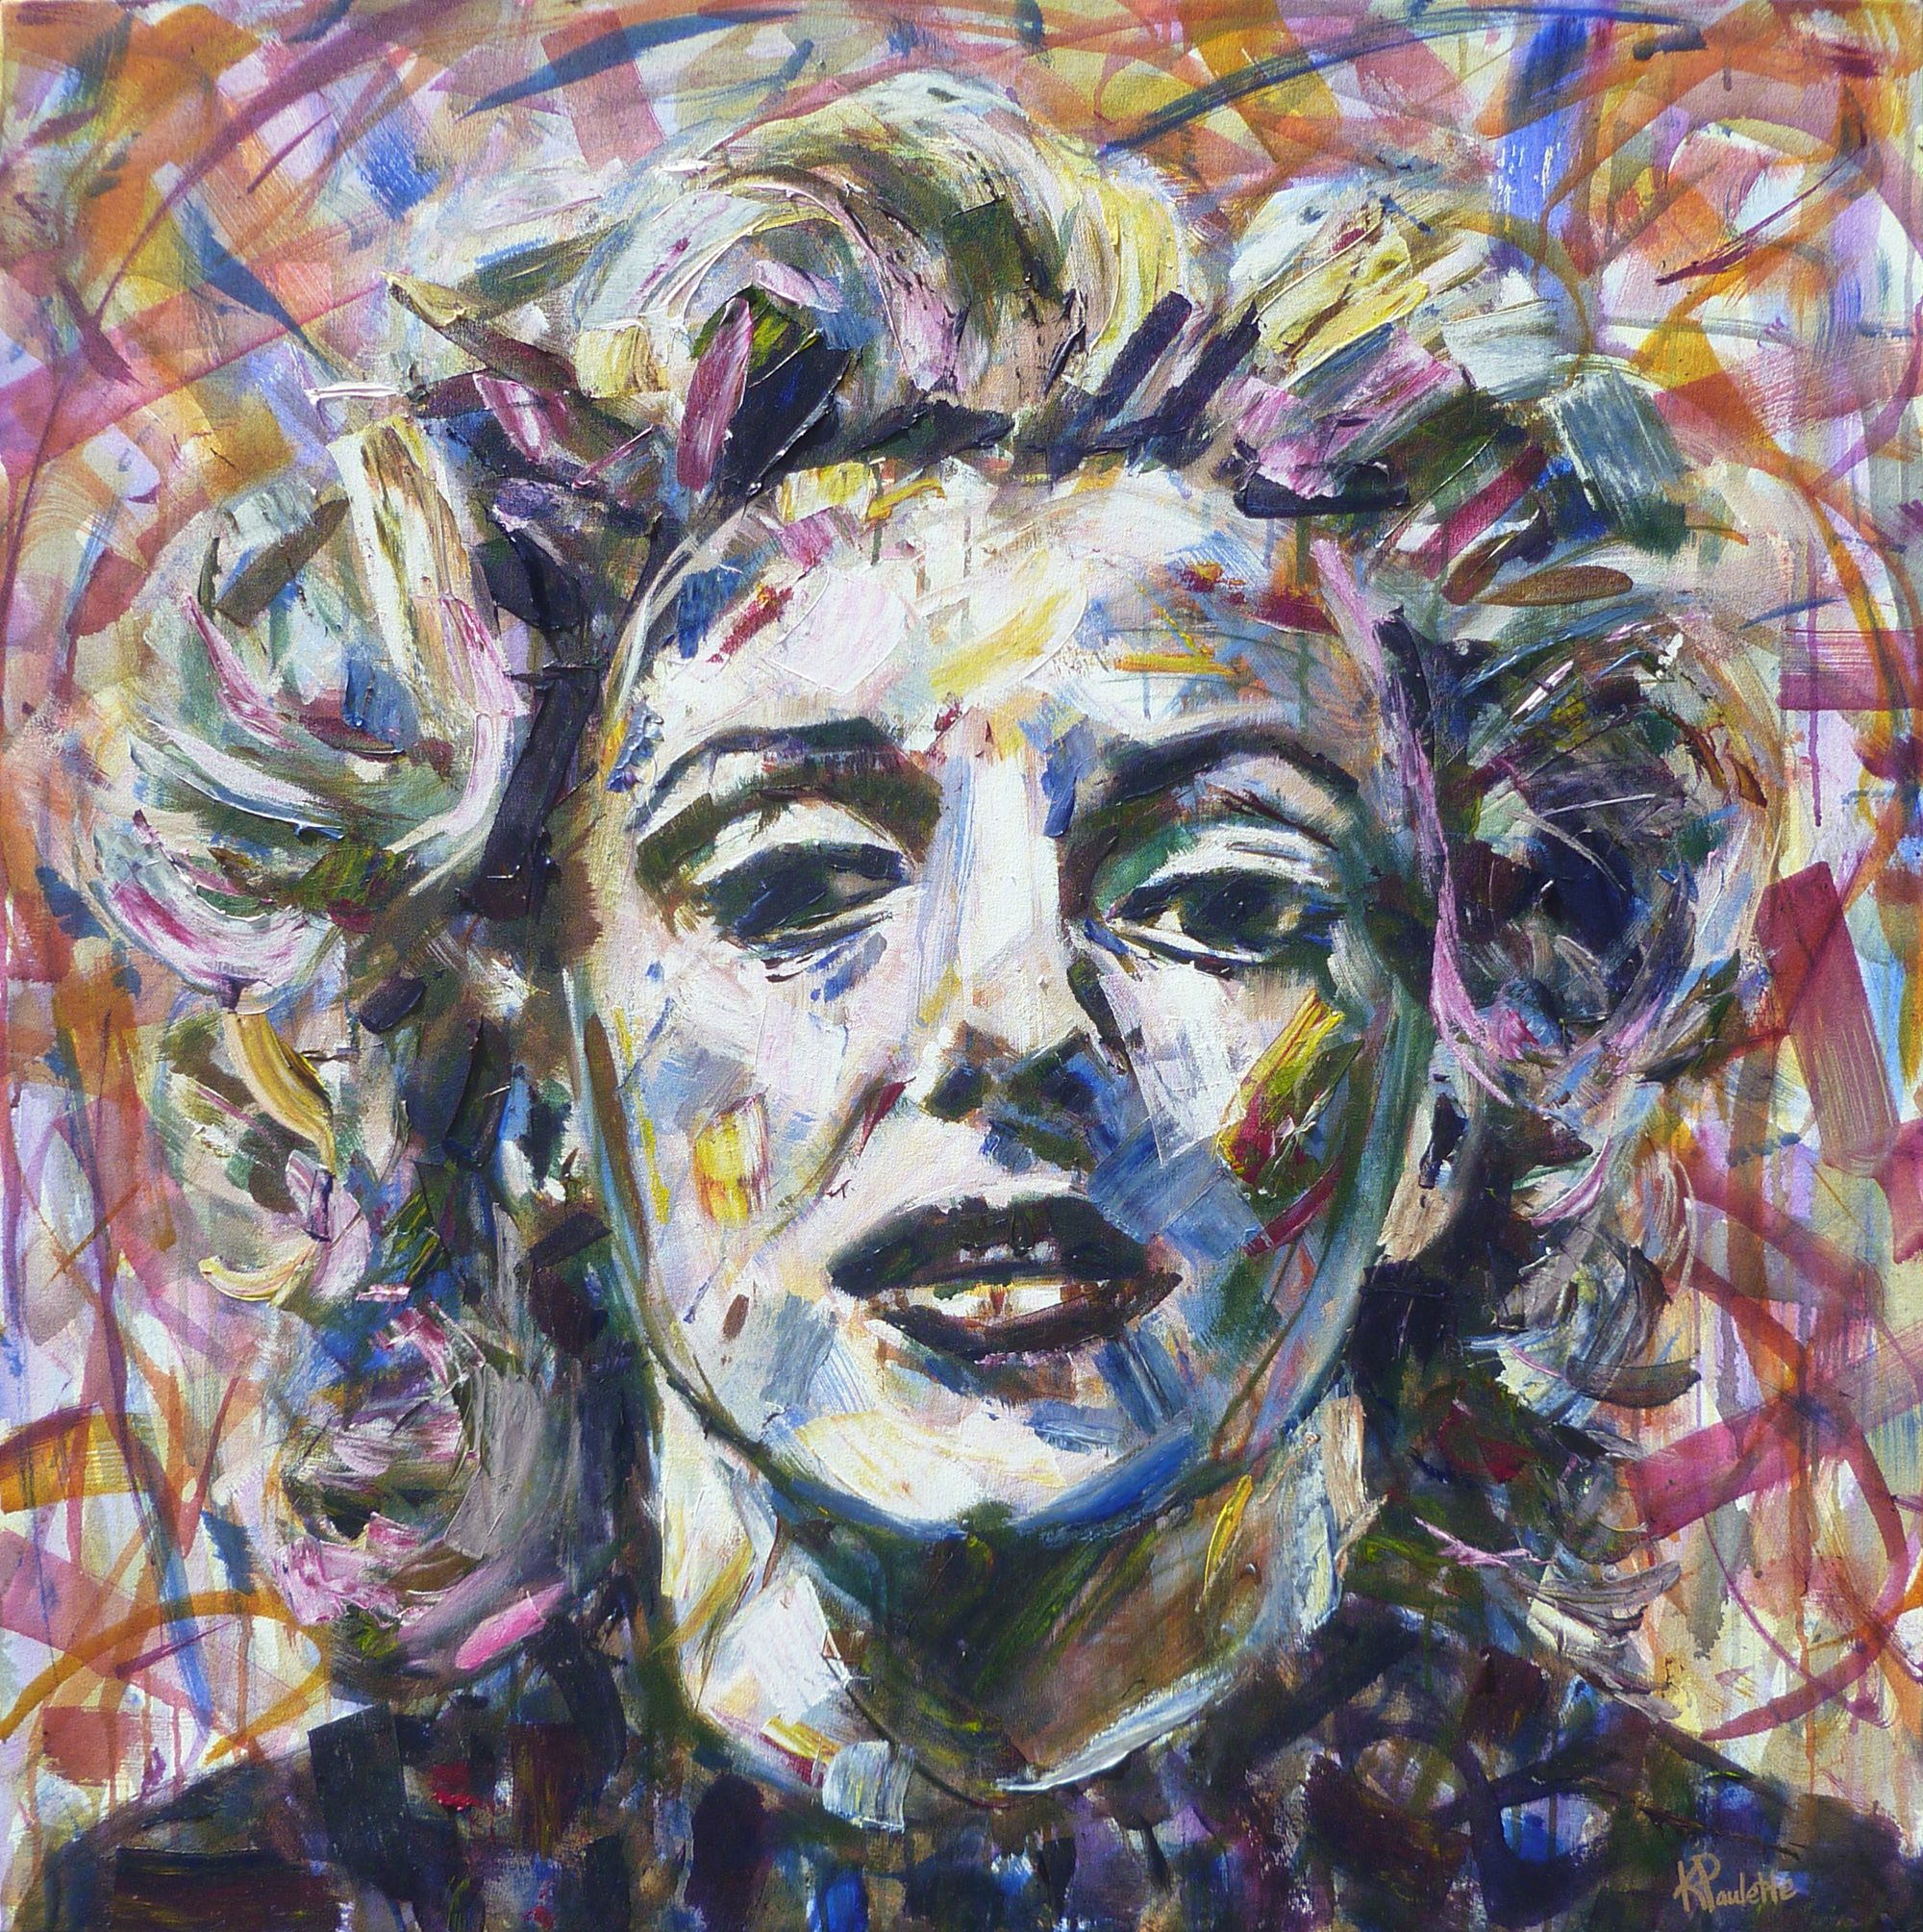 Shades of Marilyn -----  painting by Kent Paulette ( aka derfla ) ----- 42 x 42 inches